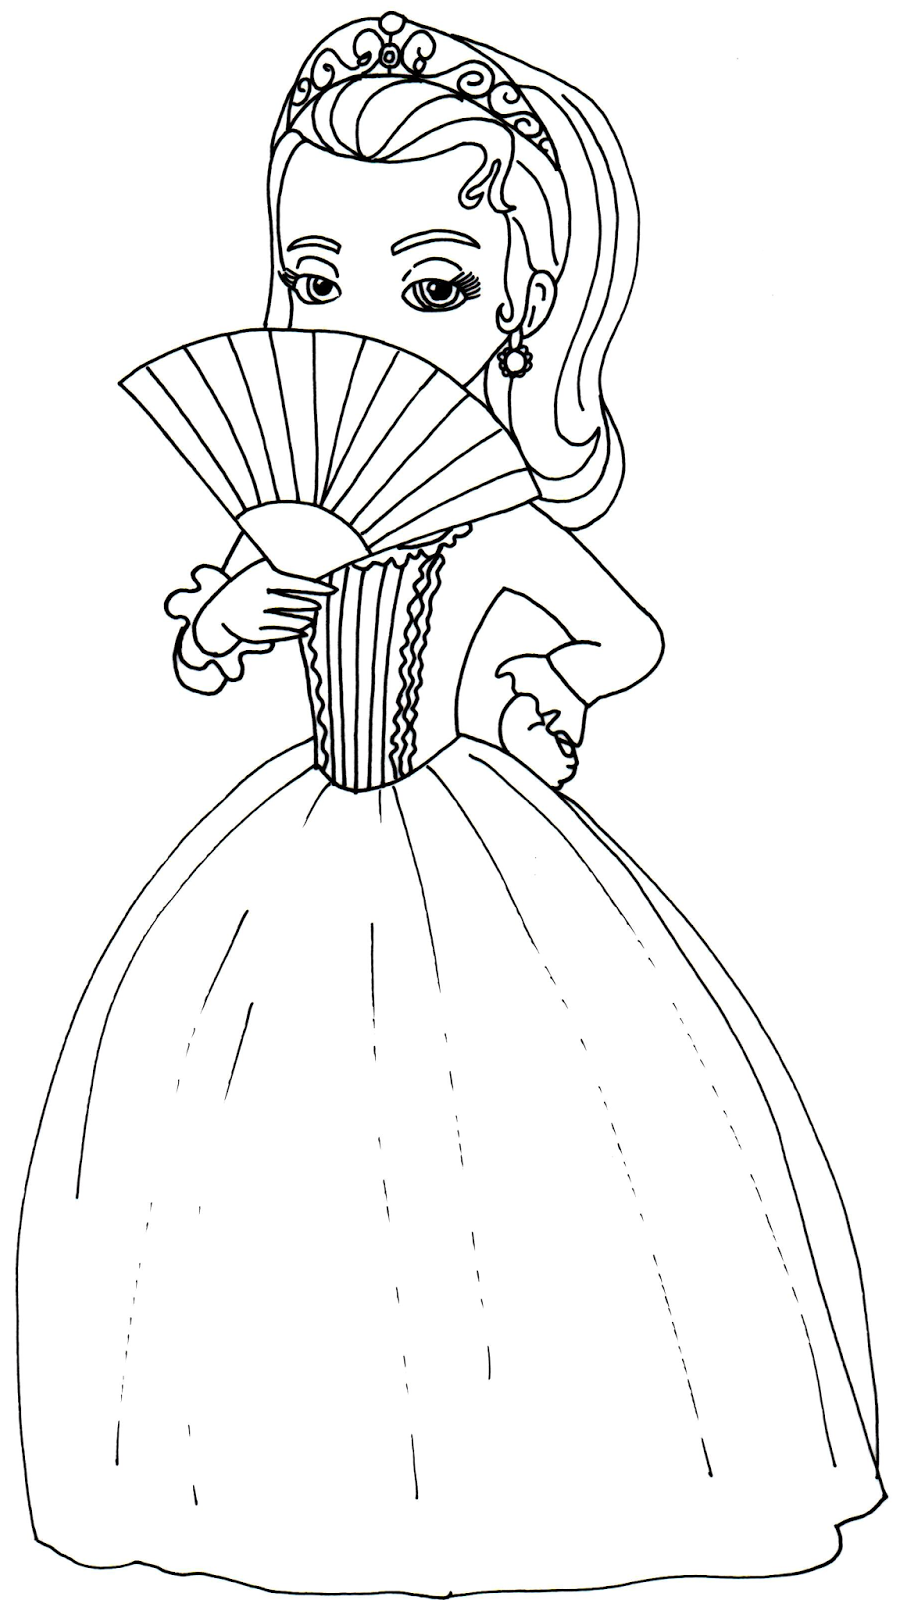 Princess amber coloring pages download